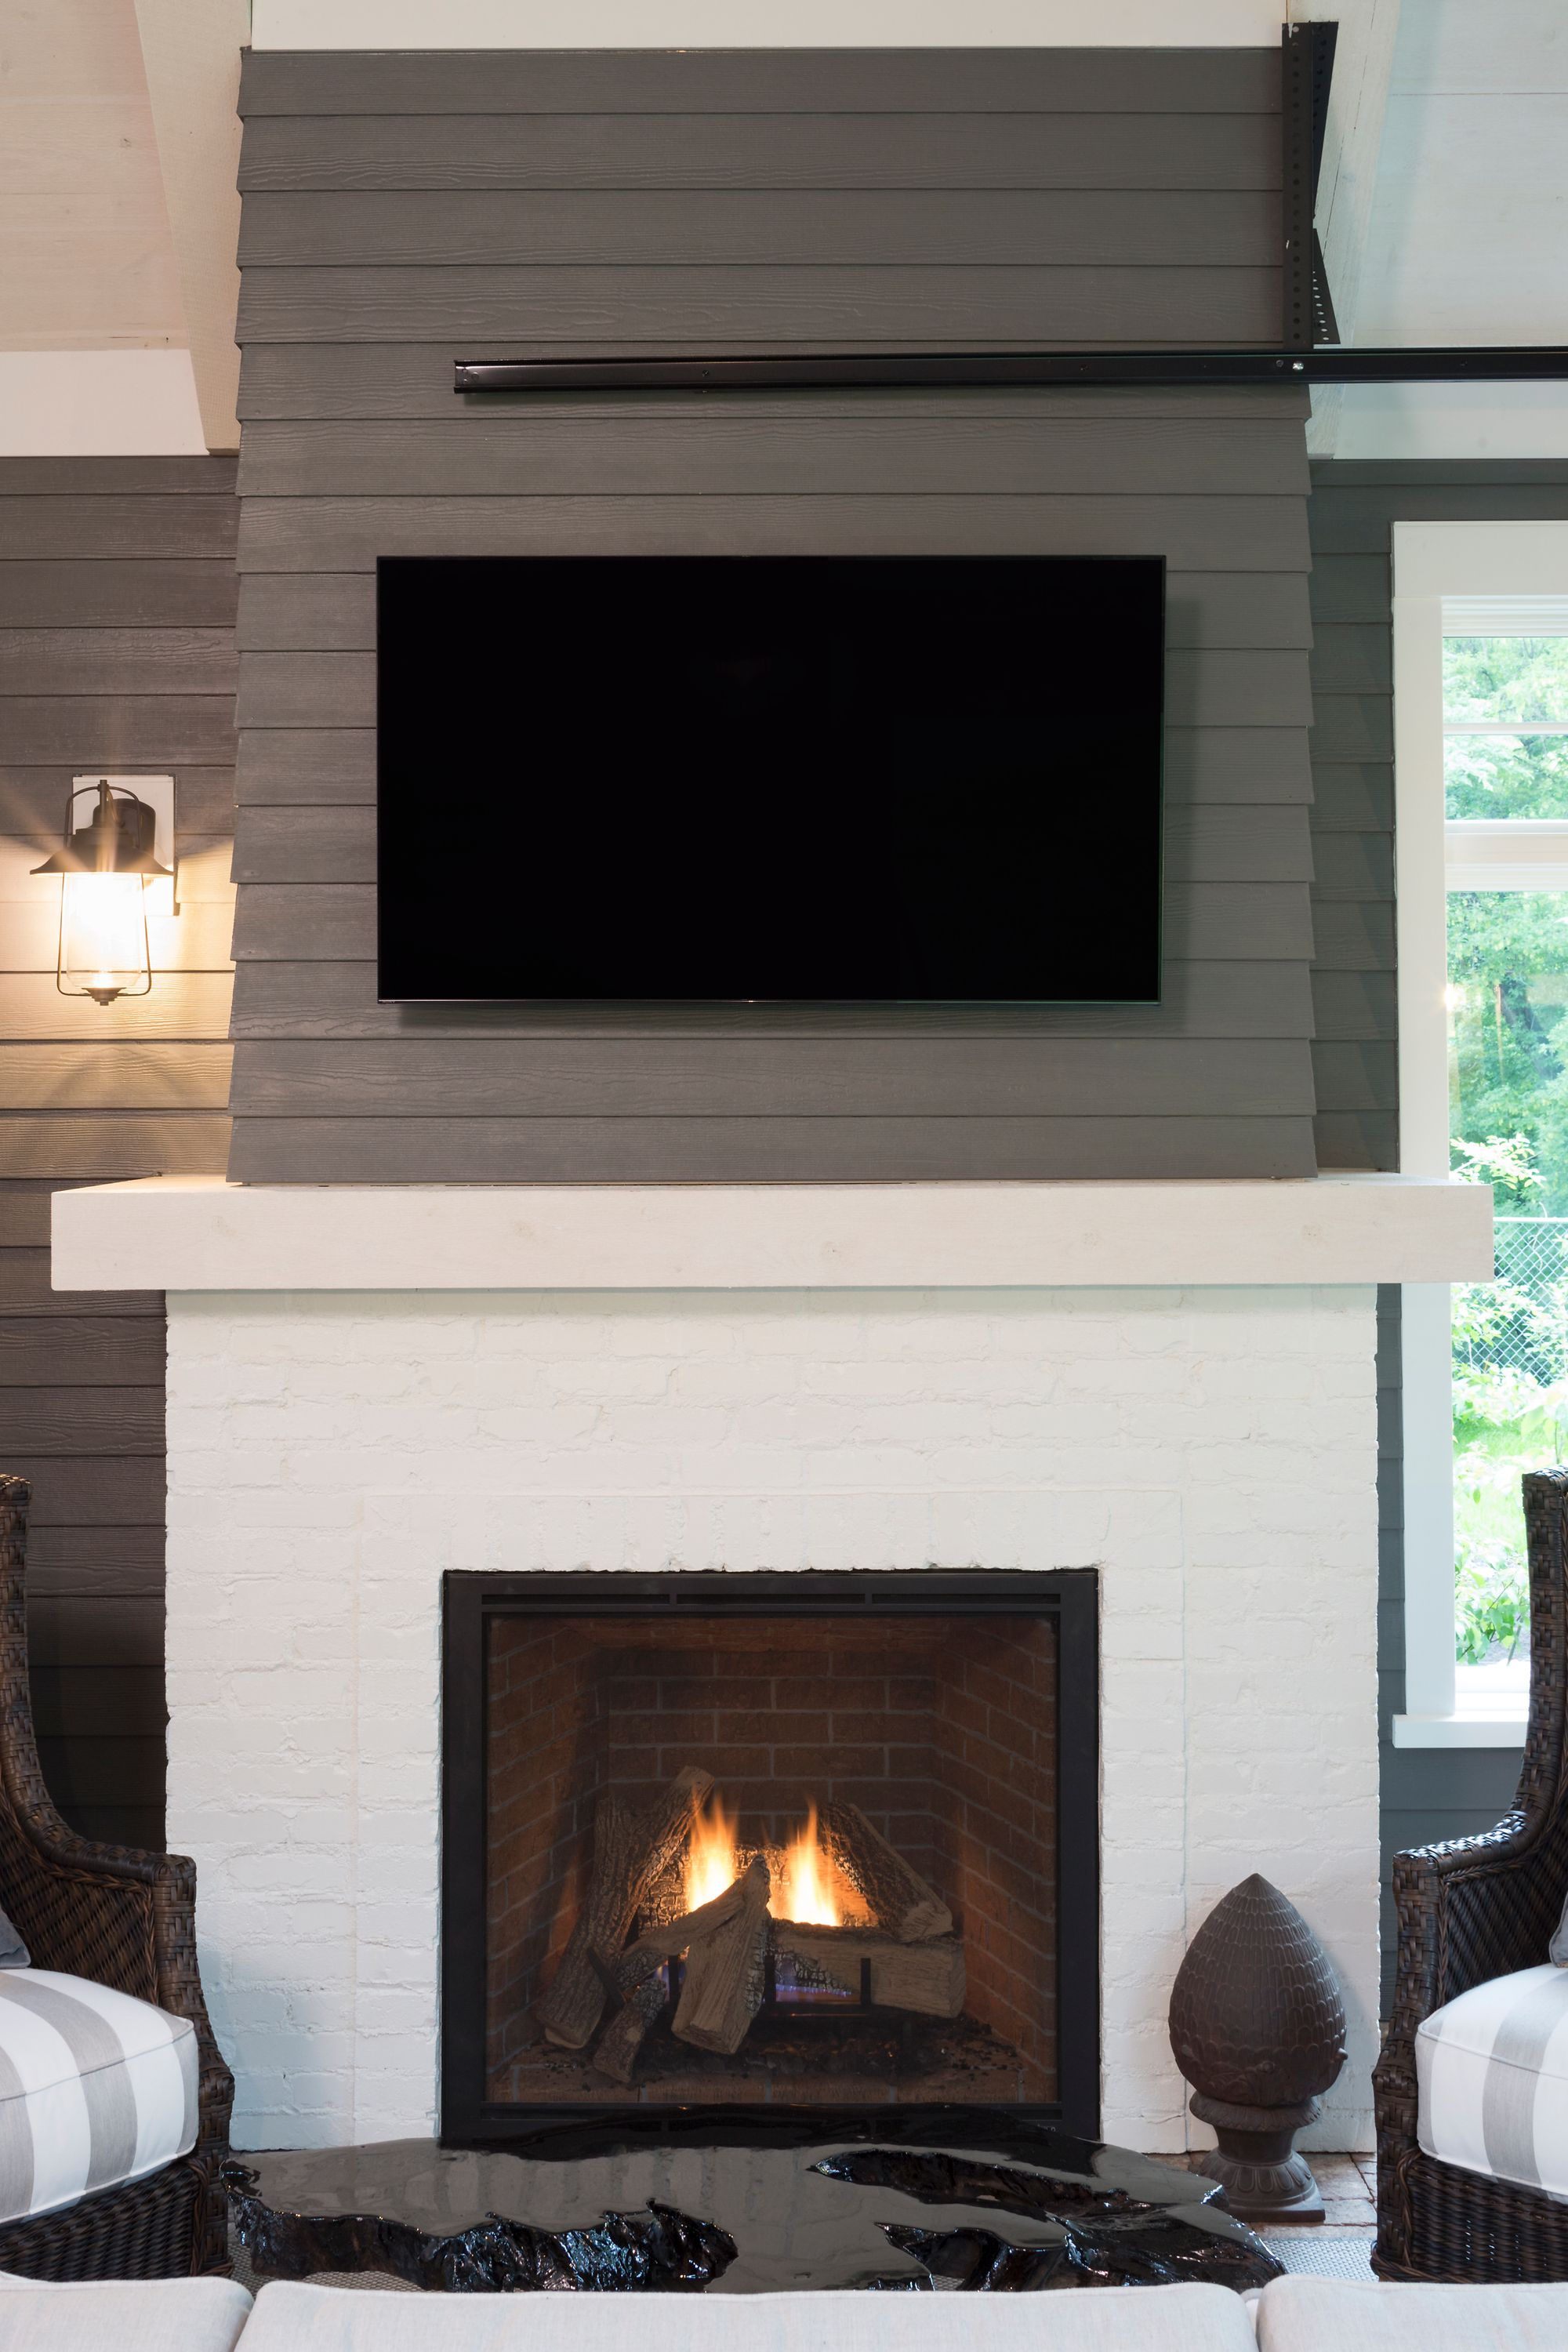 Novus Fireplace Crisp Edges And A Massive View Of The Fire Serve As The Focal